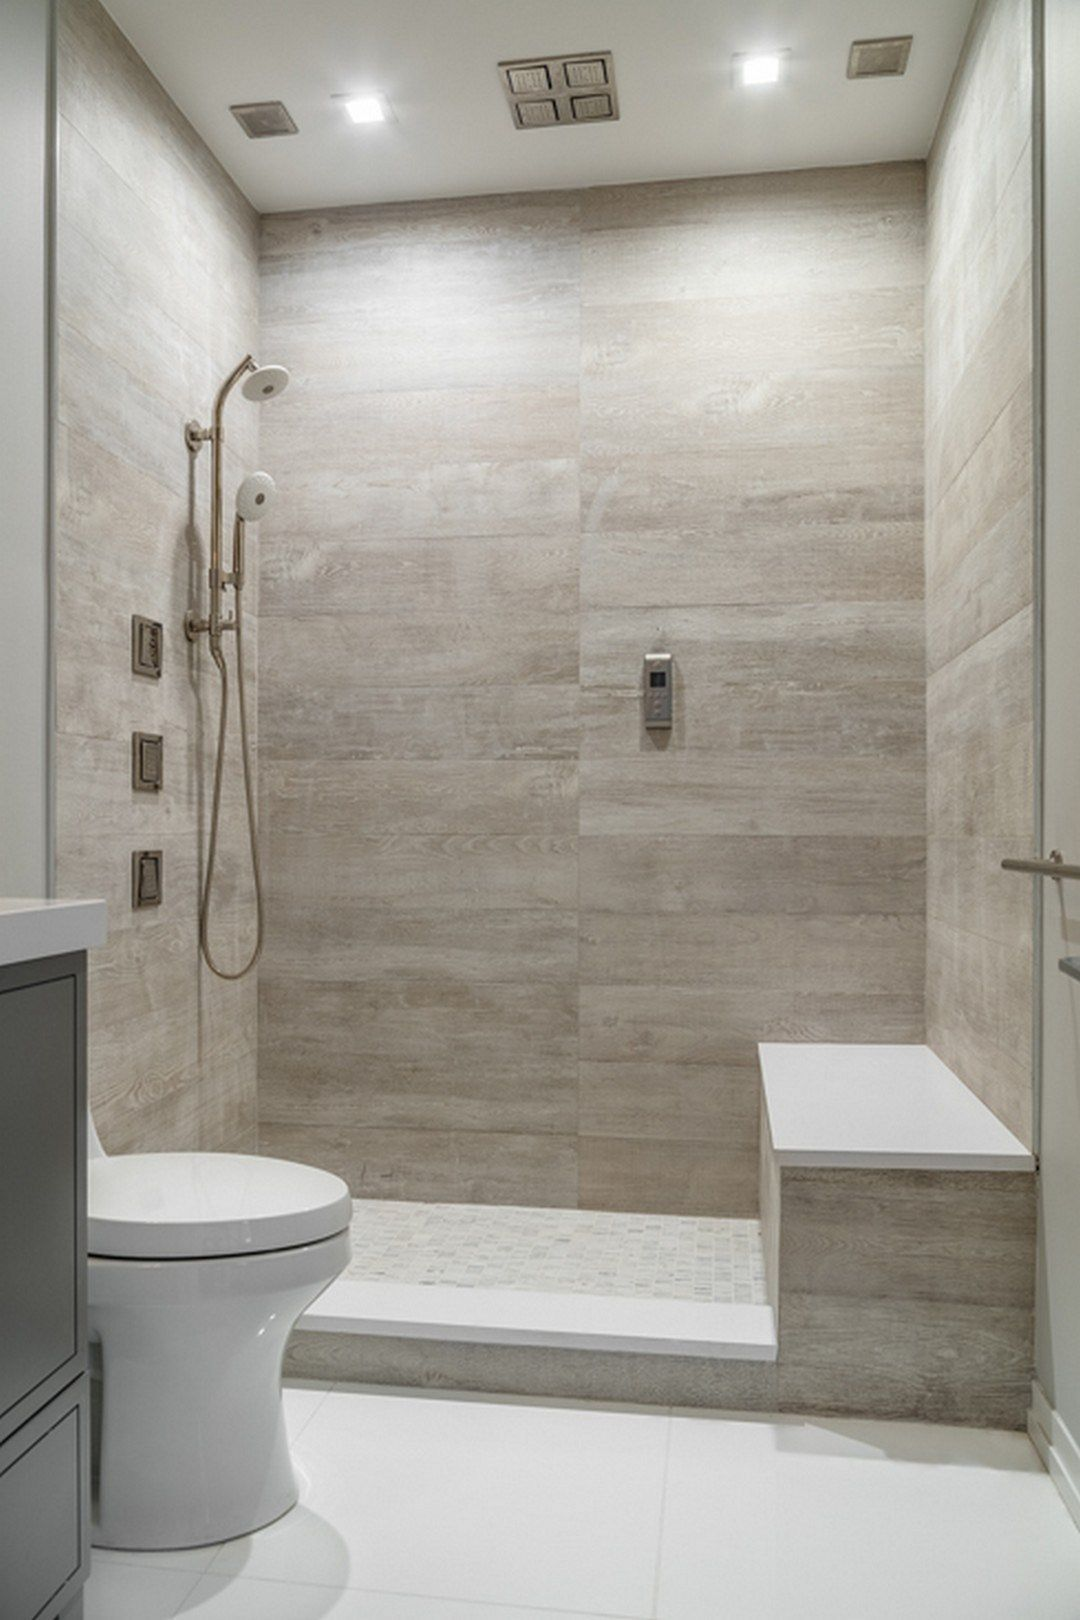 Awesome Ceramic Tile For Bathroom 65+ Best Inspirations